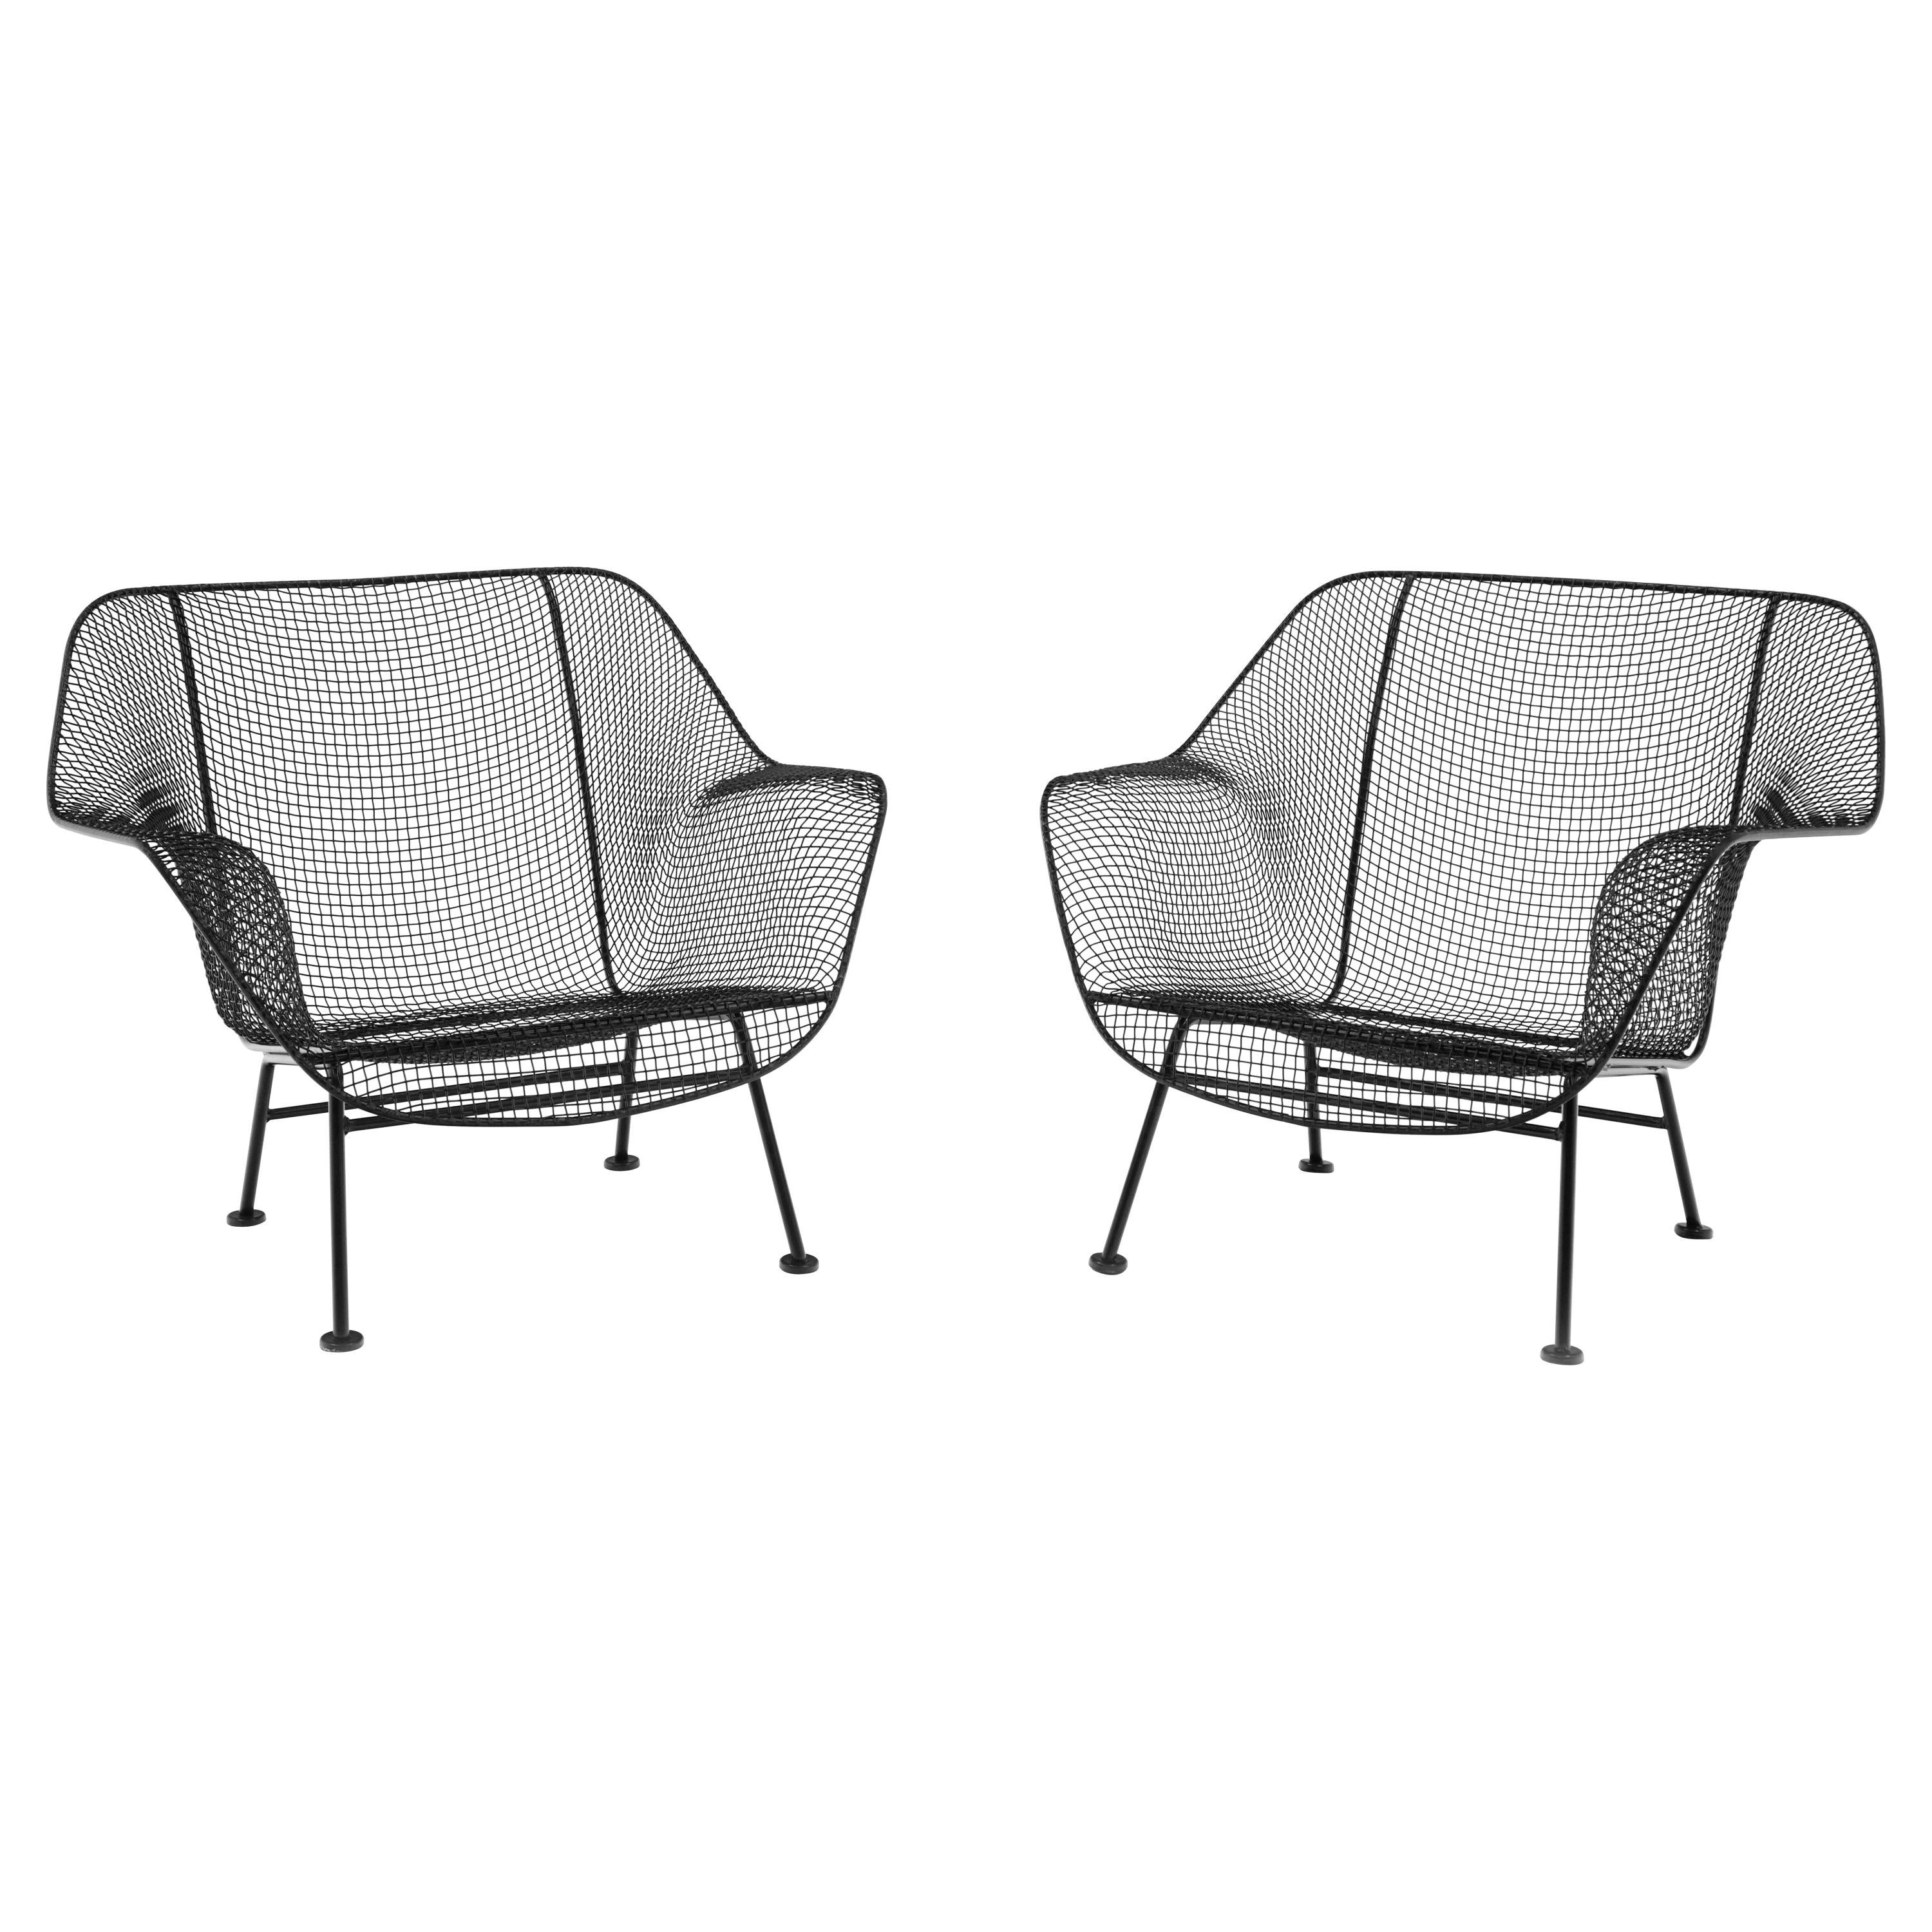 Pair of Woodard Sculptura Patio Chairs, Wrought iron and Metal Mesh, Restored